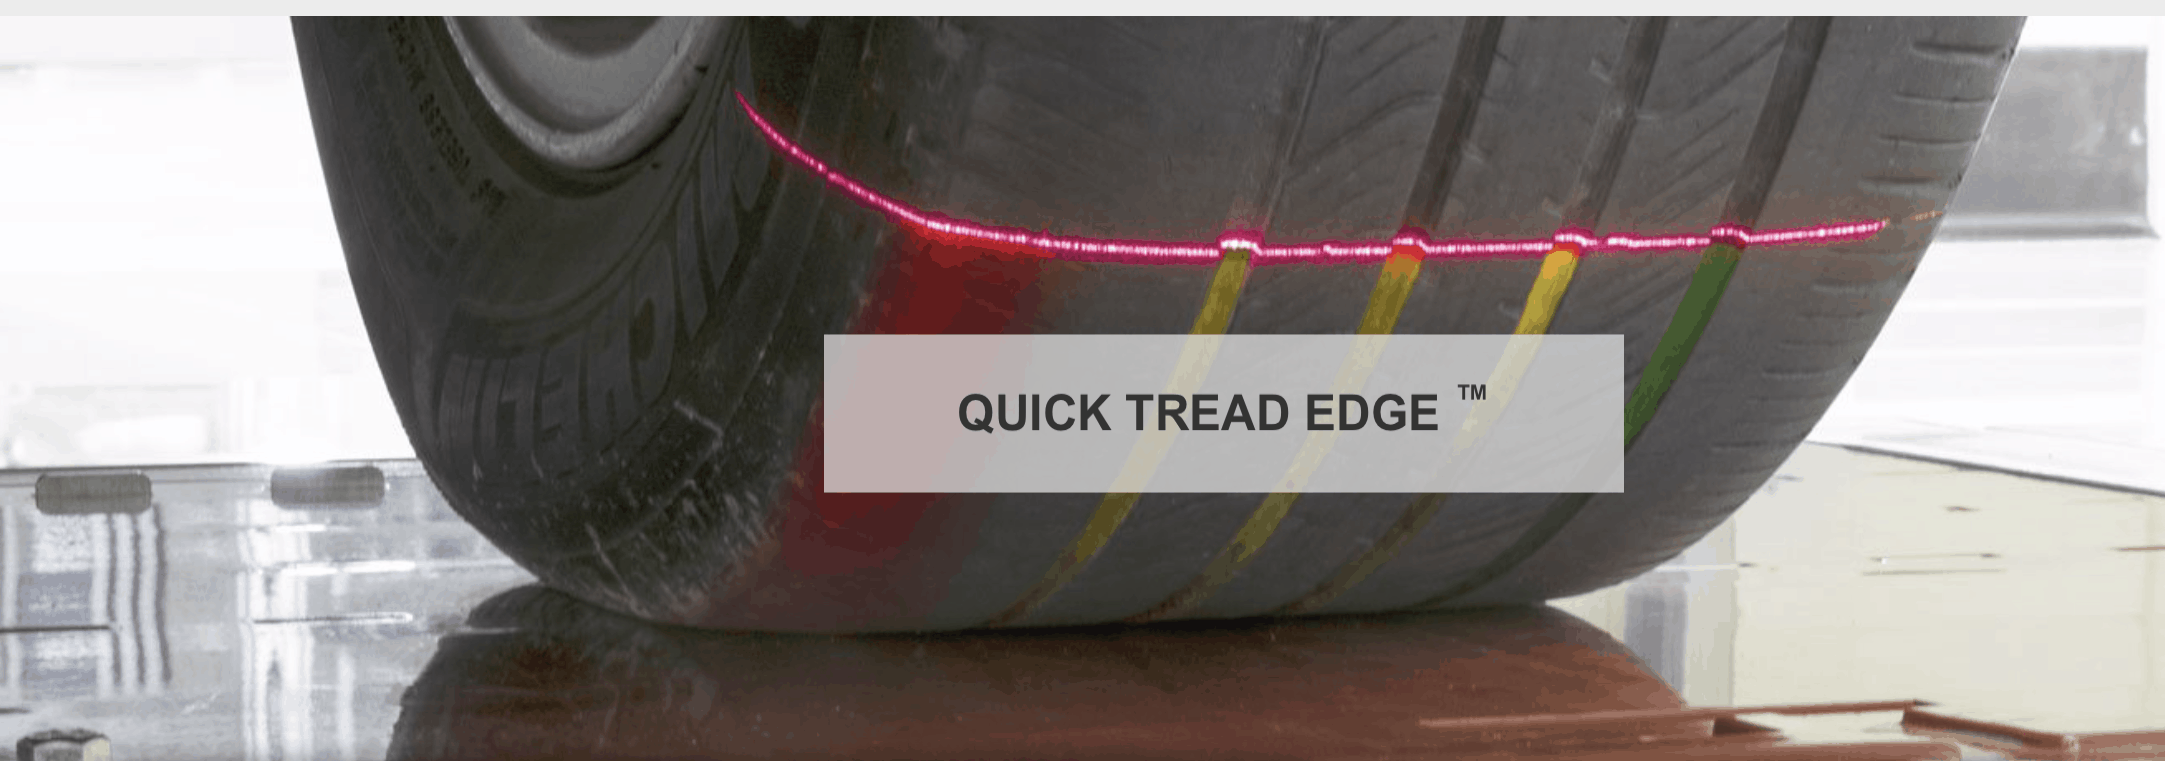 Quick Tread Edge